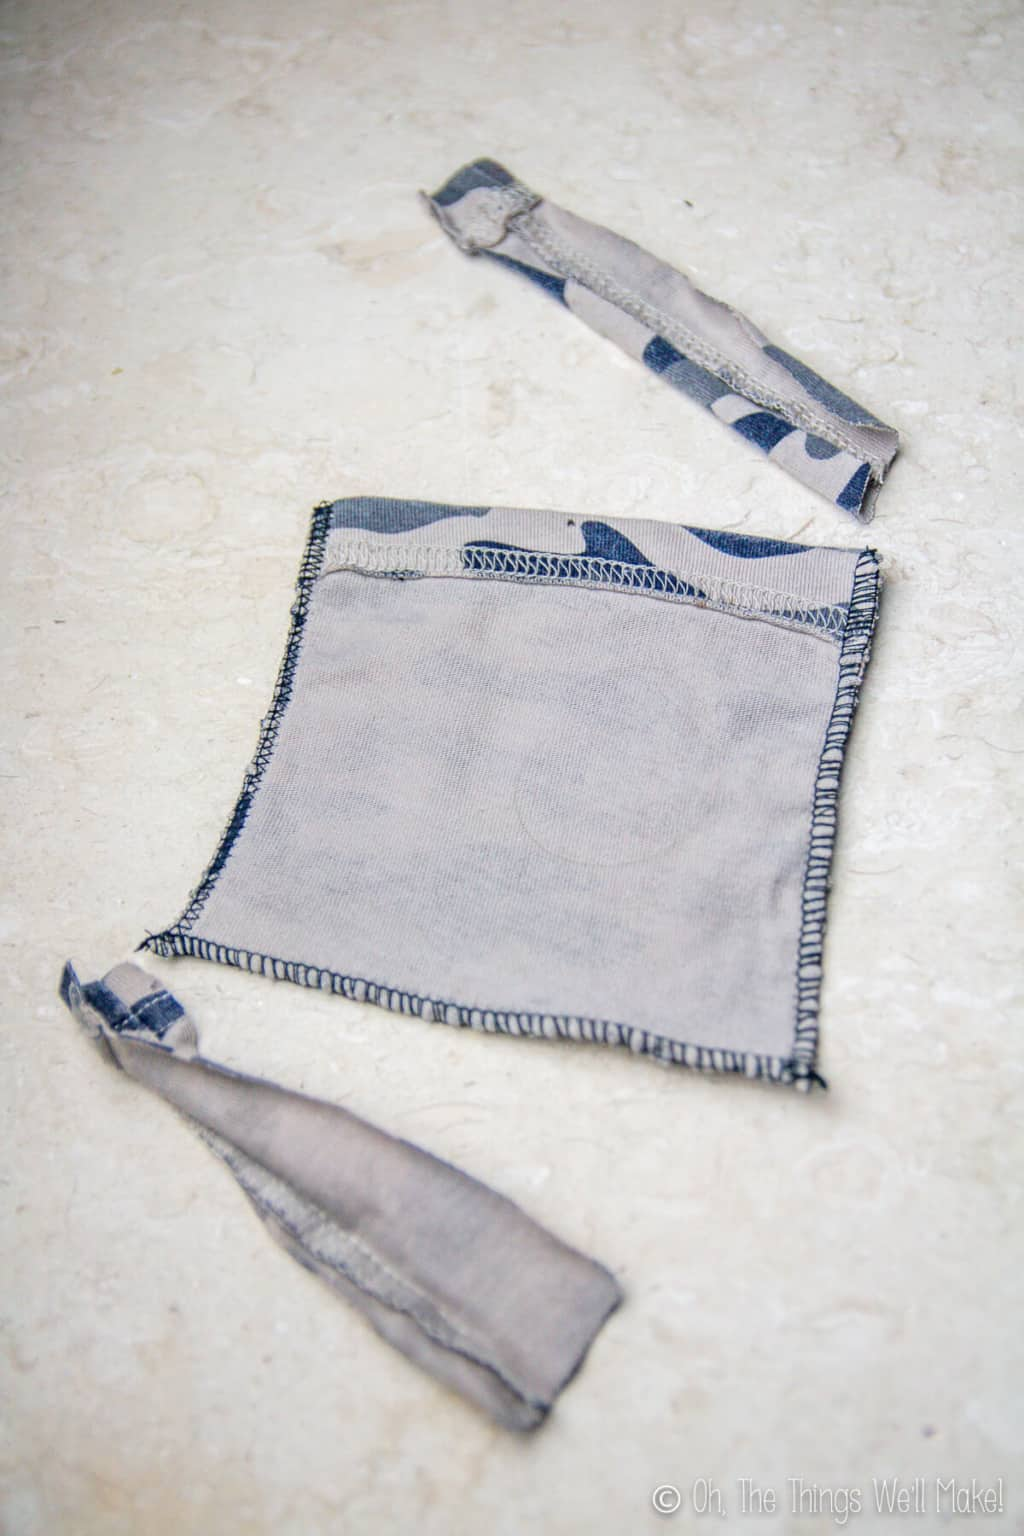 A cut sleeve laid inside out with the bottom hem sewed.